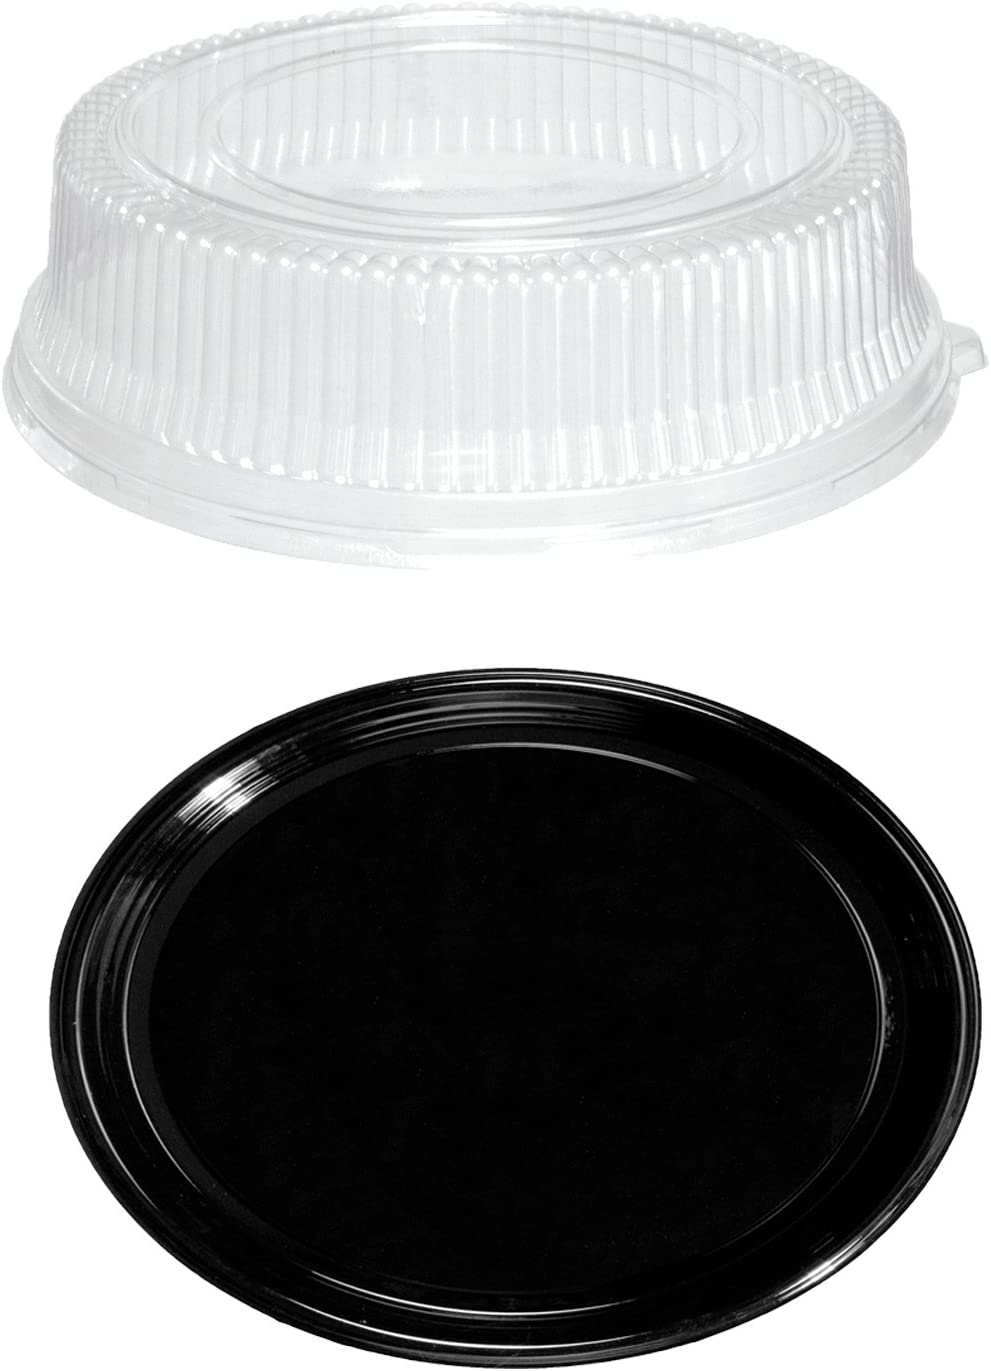 Party Essentials Soft Plastic 12-Inch Round Flat Serving/Catering Trays, Black with Clear Dome Lids, Set of 2